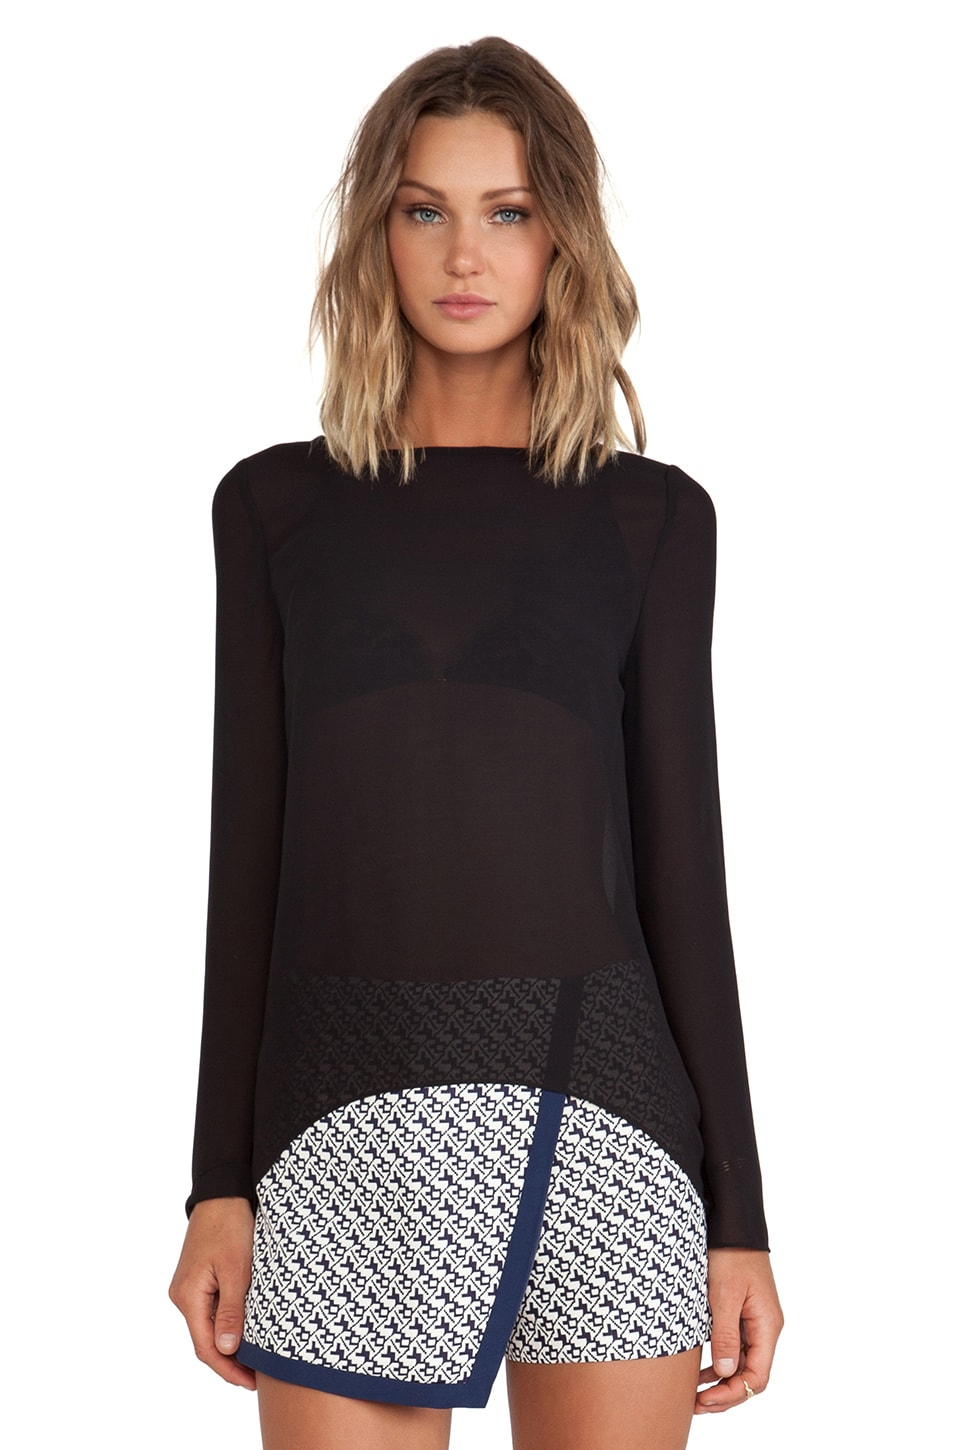 BLAQUE LABEL Sheer Long Sleeve Top in Black